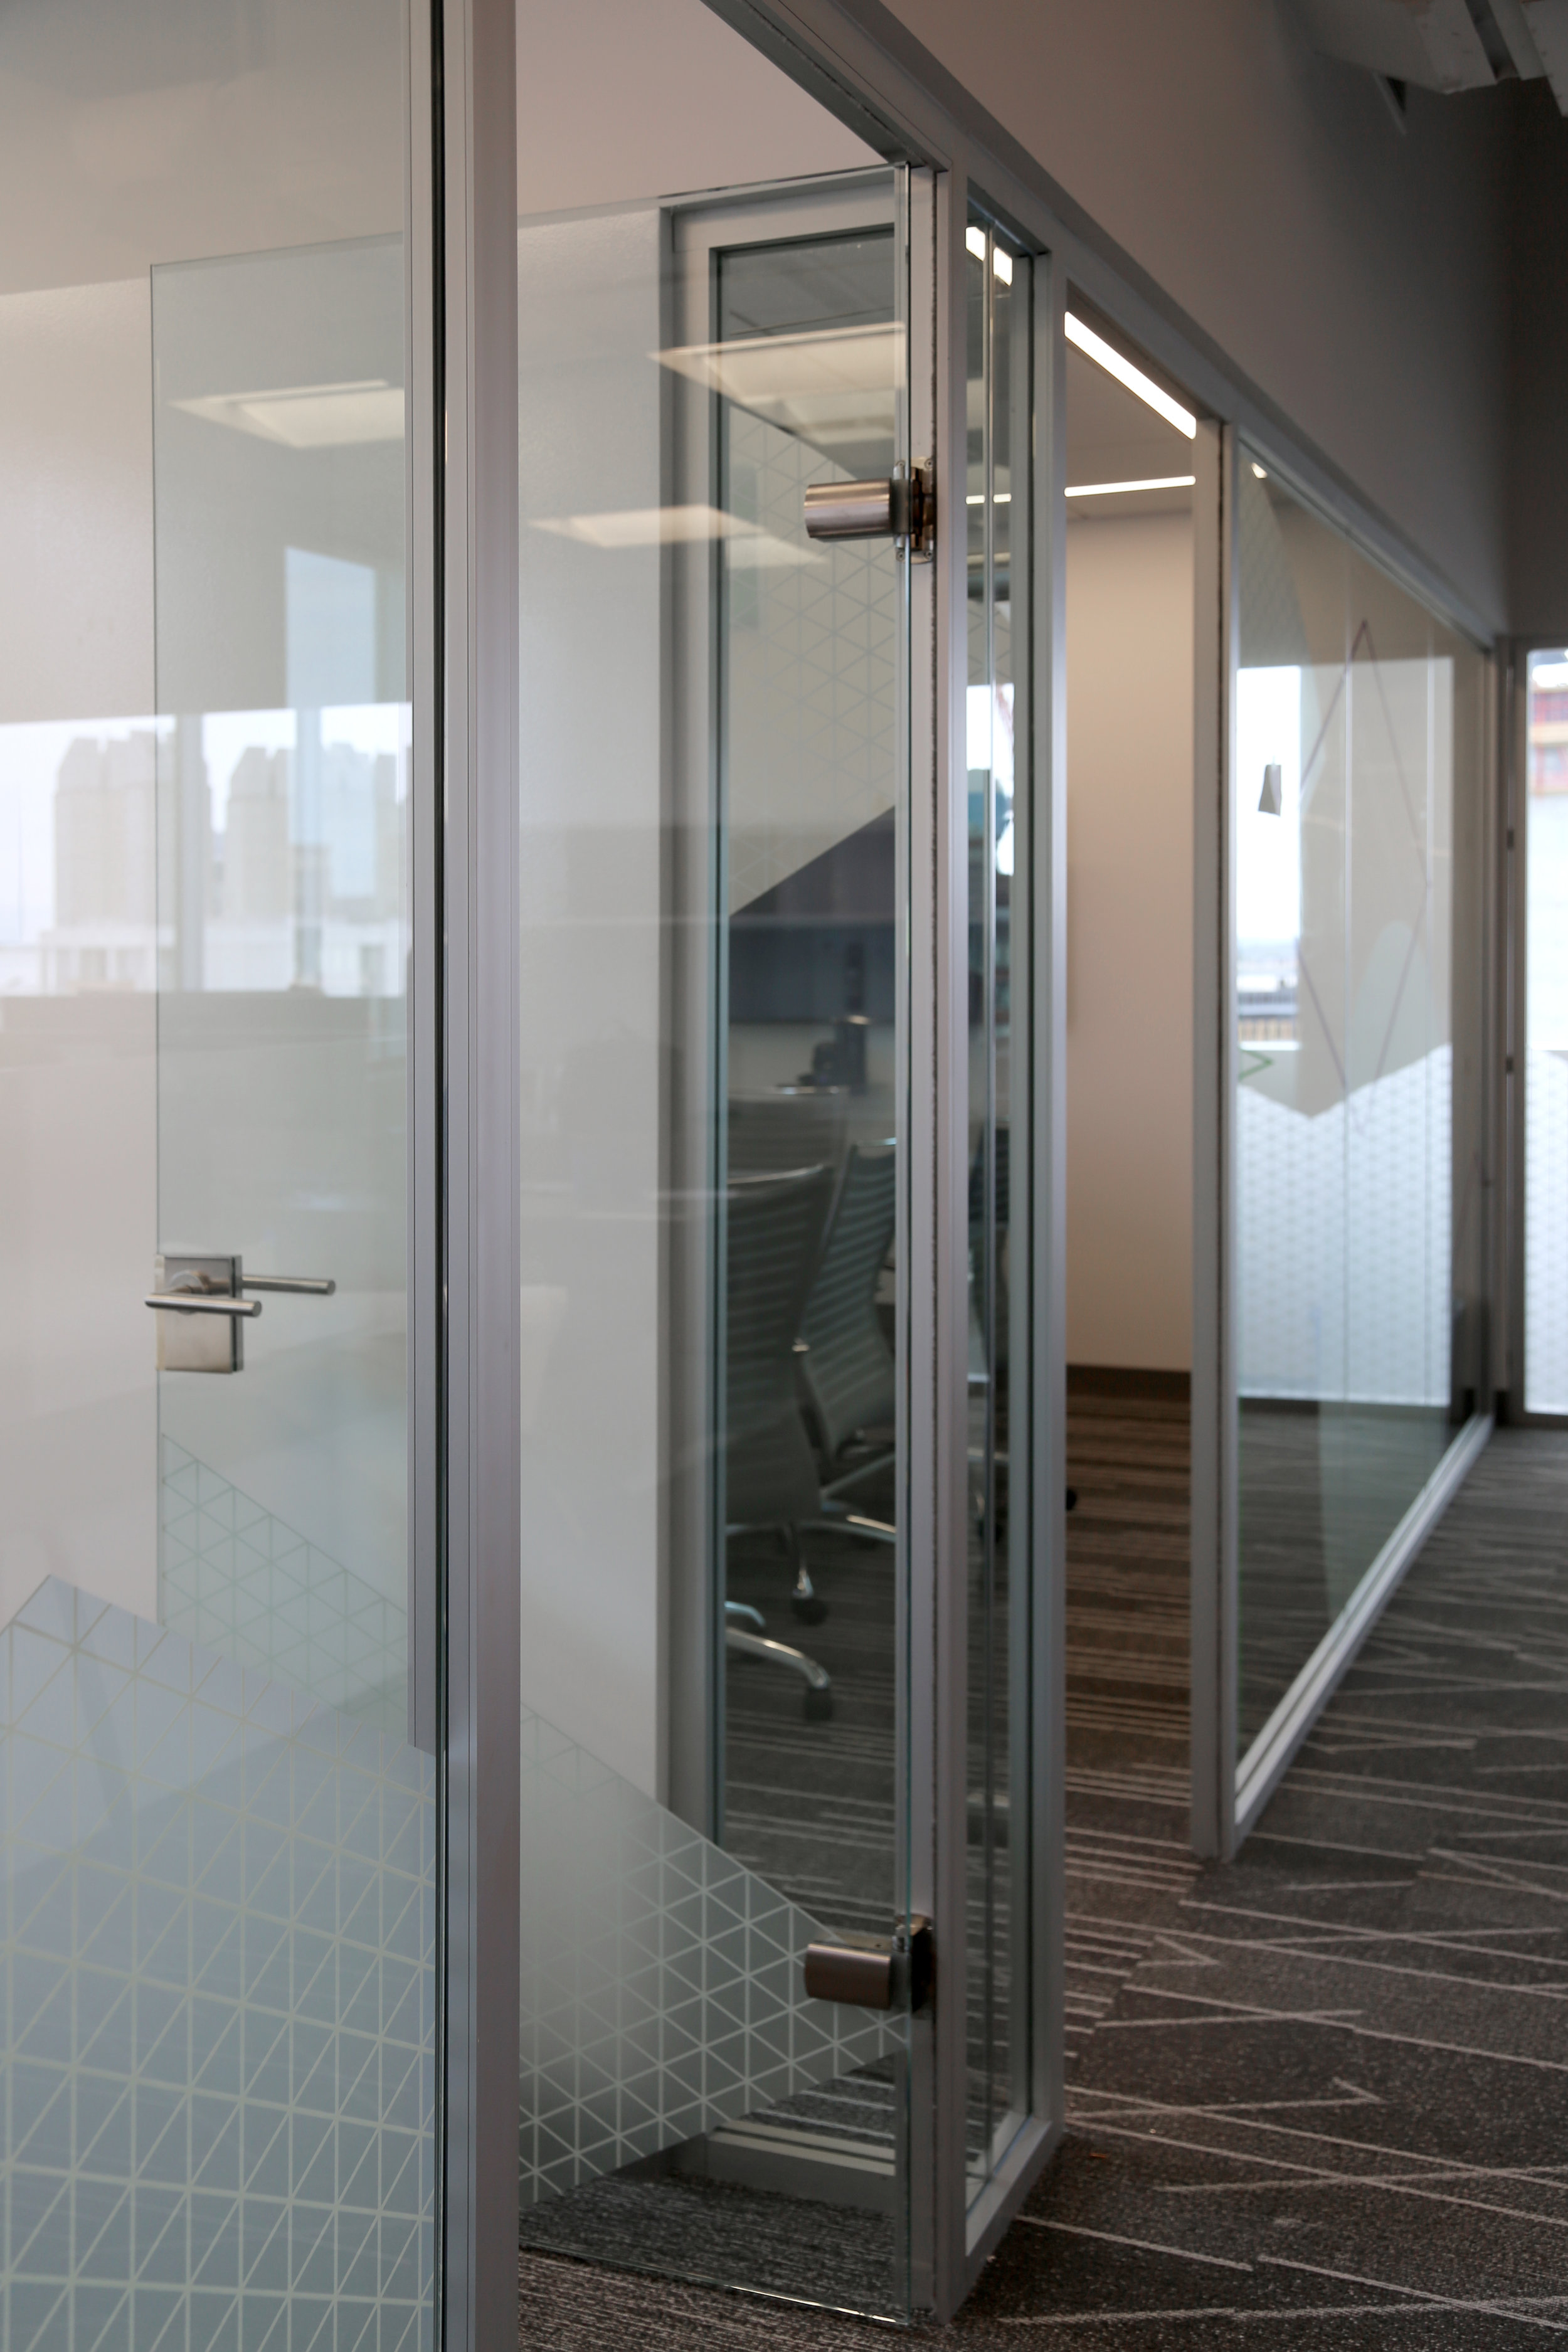 Litespace Aluminum Demountable Wall System Frameless Glass Door - Spaceworks AI.jpg